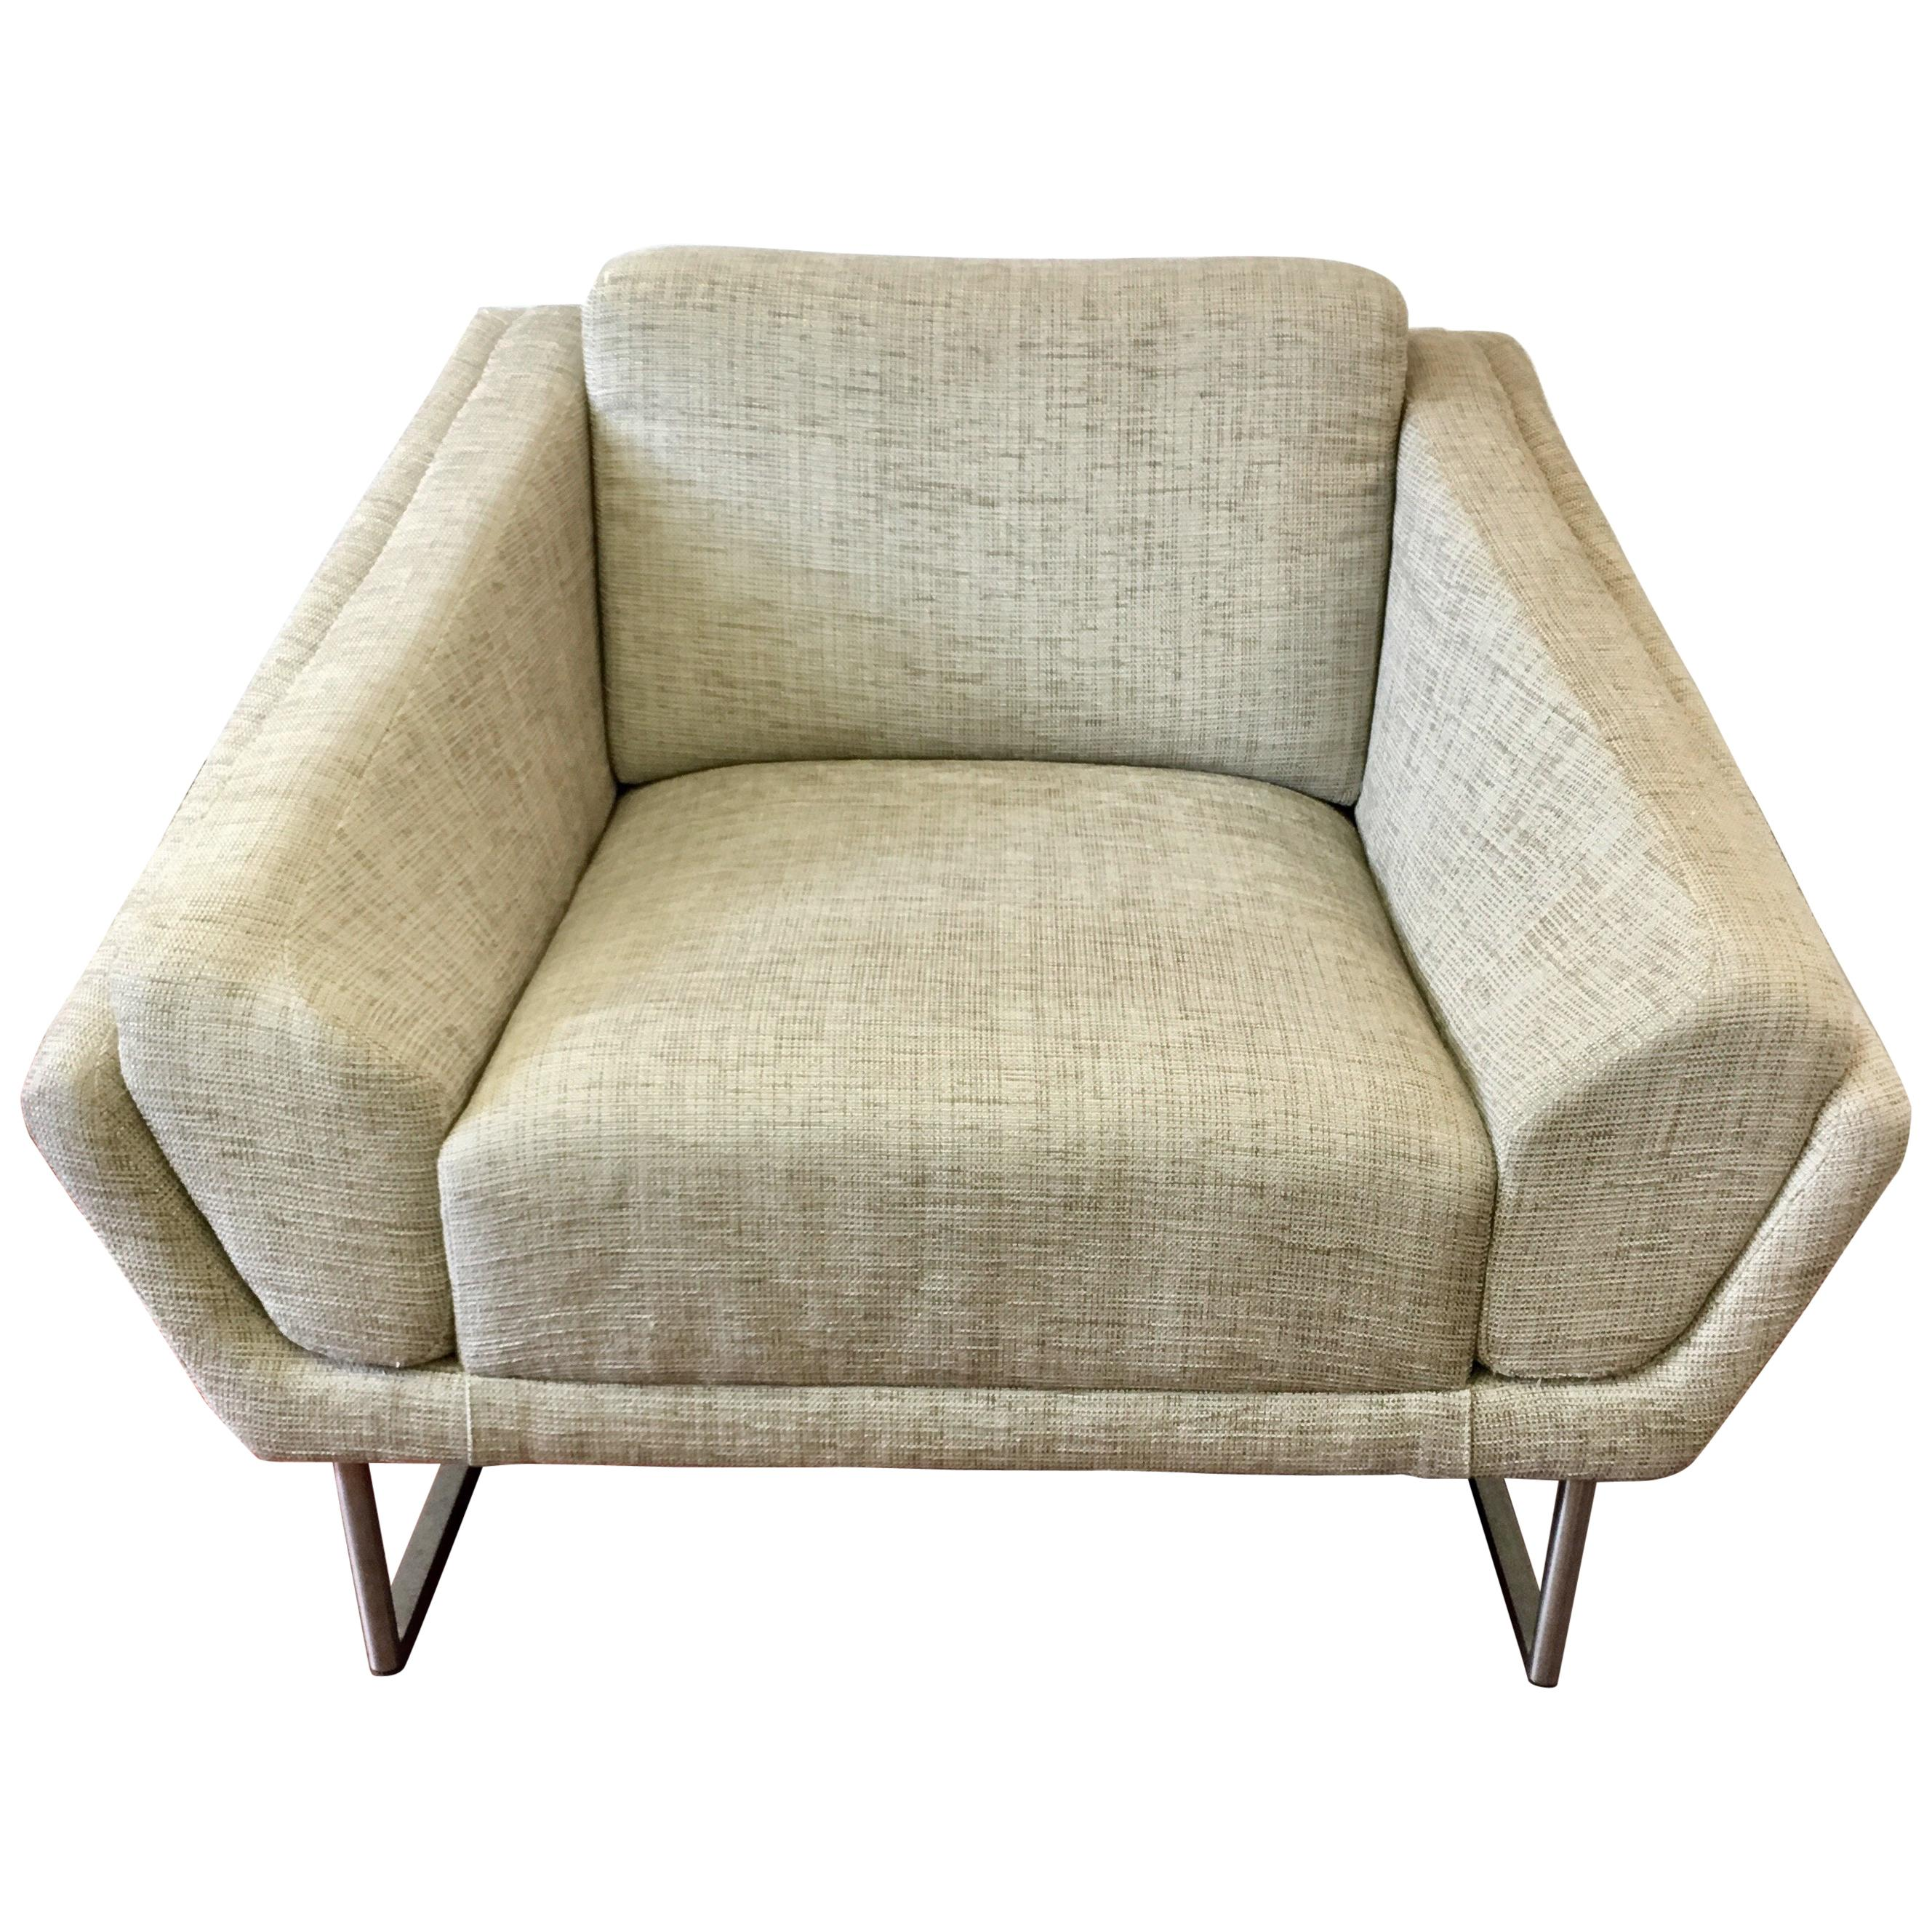 Set of Four HBF Barbara Barry Hickory Architectural Curved Lounge Chairs